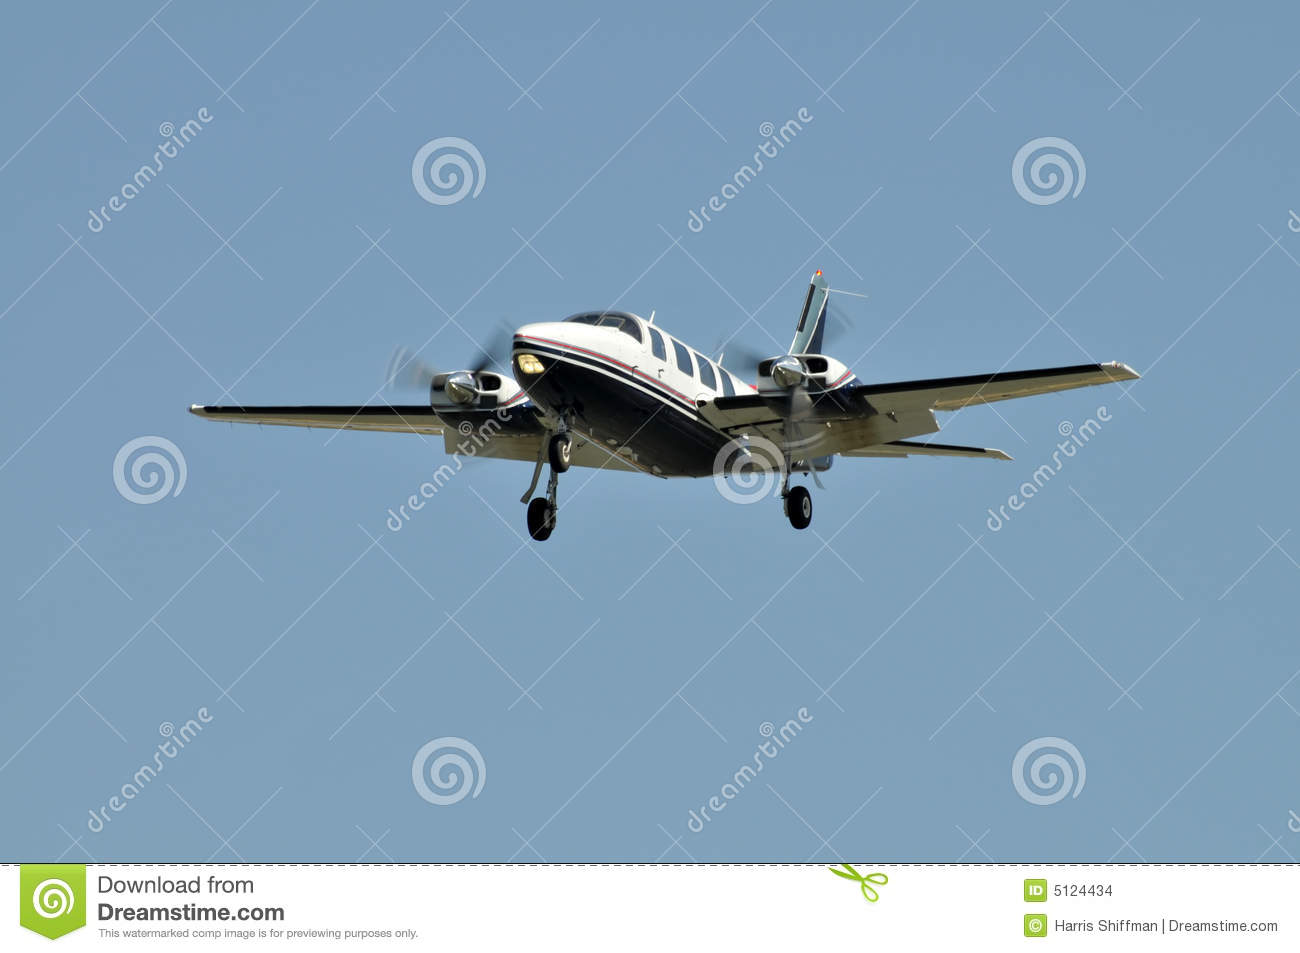 Small Plane Stock Images Image 5124434